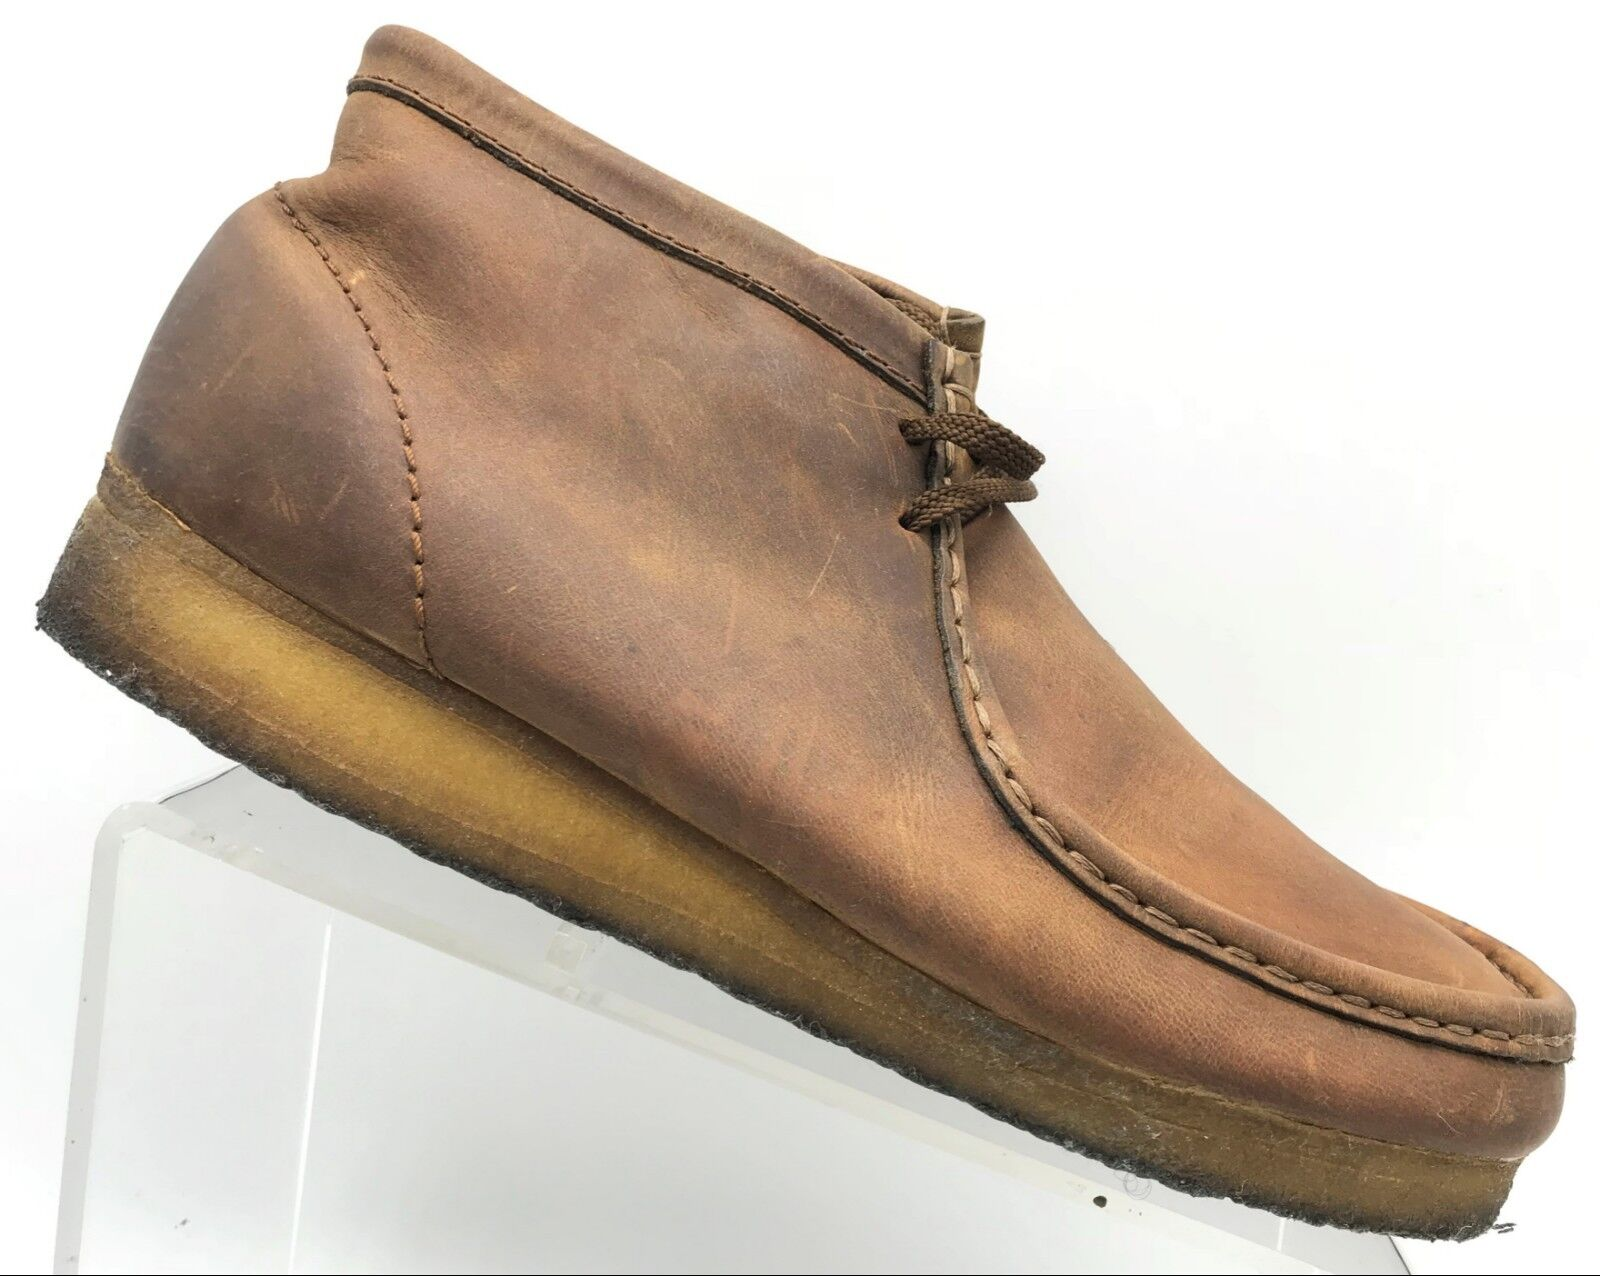 Clarks Original Wallabee Brown Leather Lace Up Chukka Boots shoes Men's 11 M